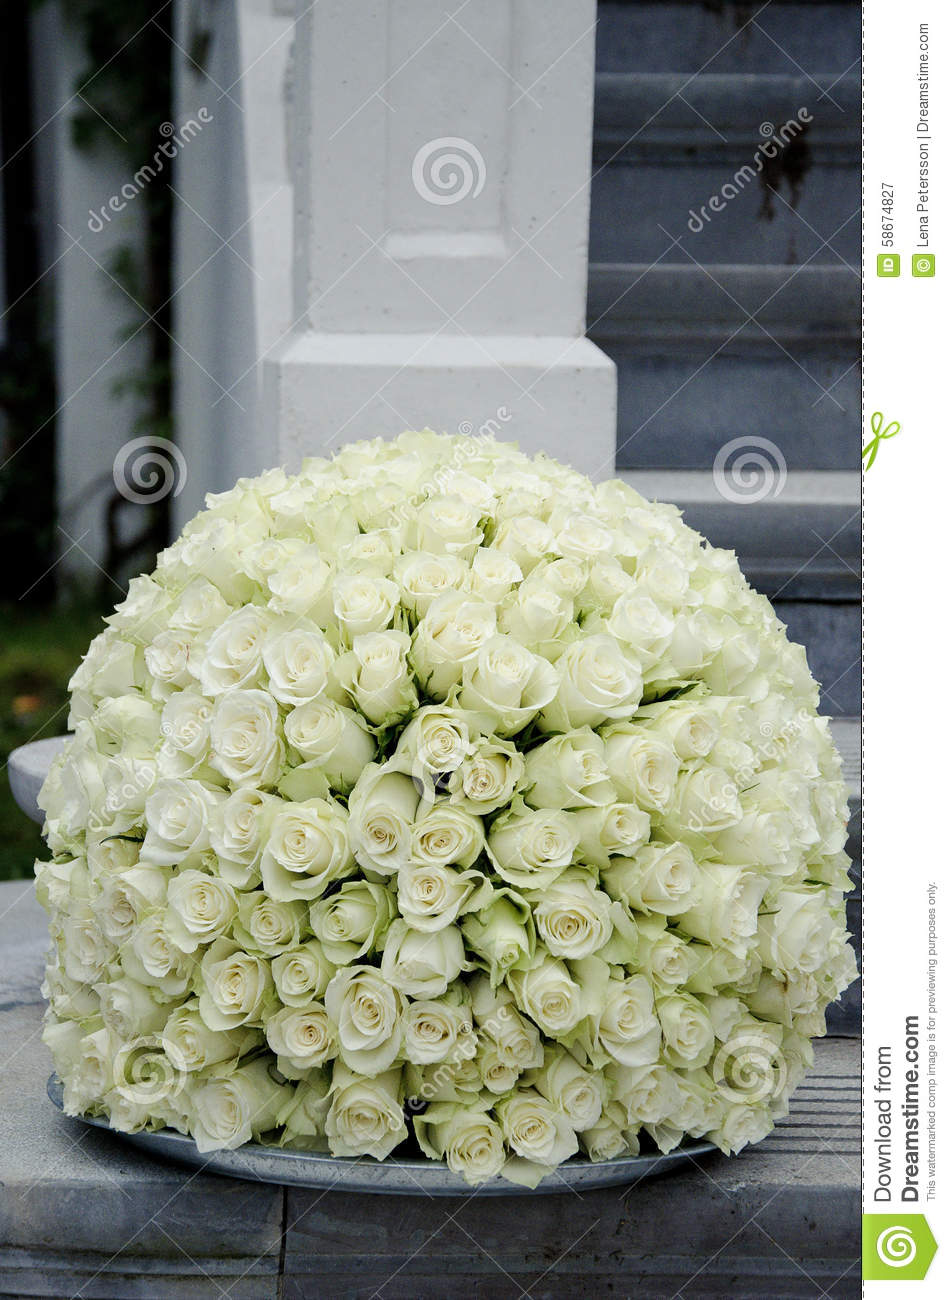 White Roses Centerpiece Flower Ball Stock Image Image Of